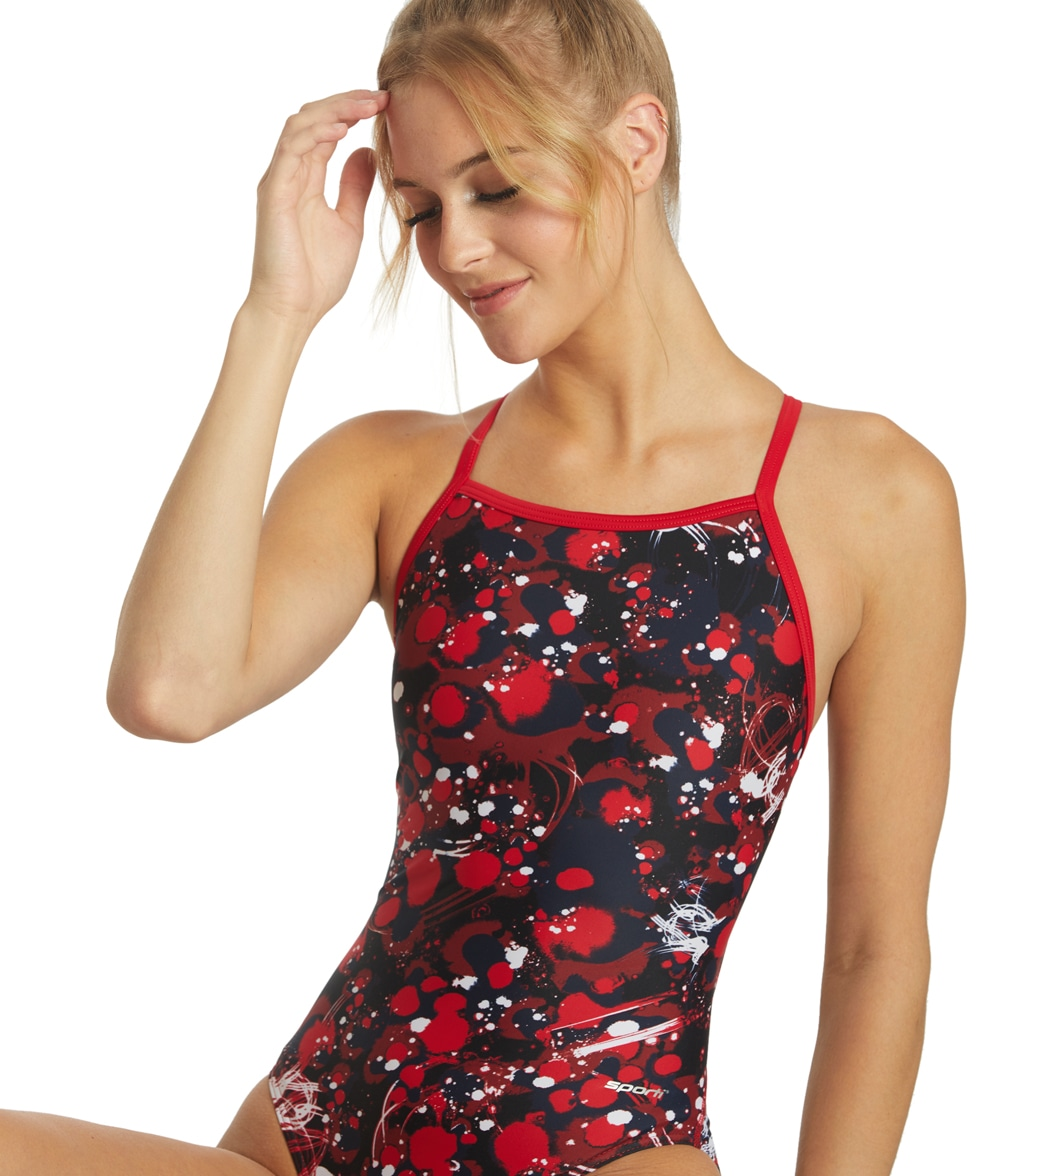 740846a2f12 Sporti Paint Splatter Thin Strap One Piece Swimsuit at SwimOutlet.com